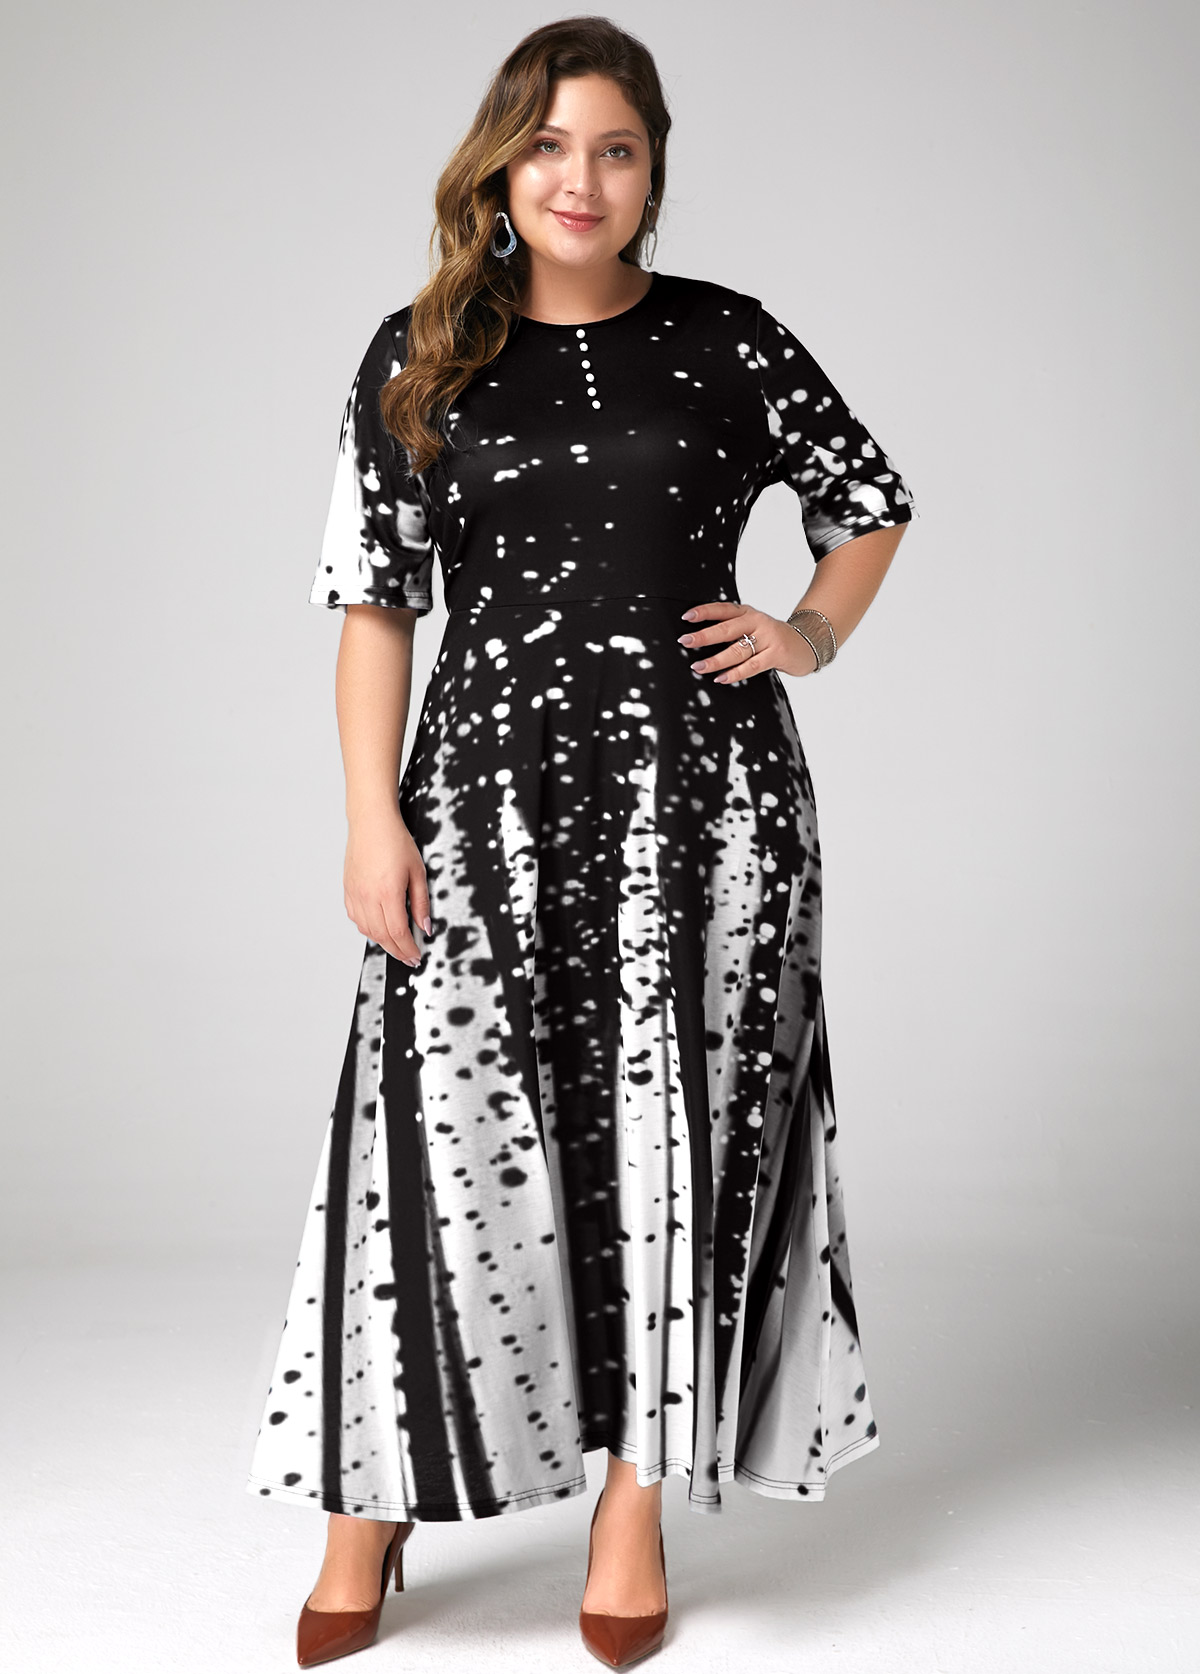 Pearl Embellished Printed Plus Size Dress